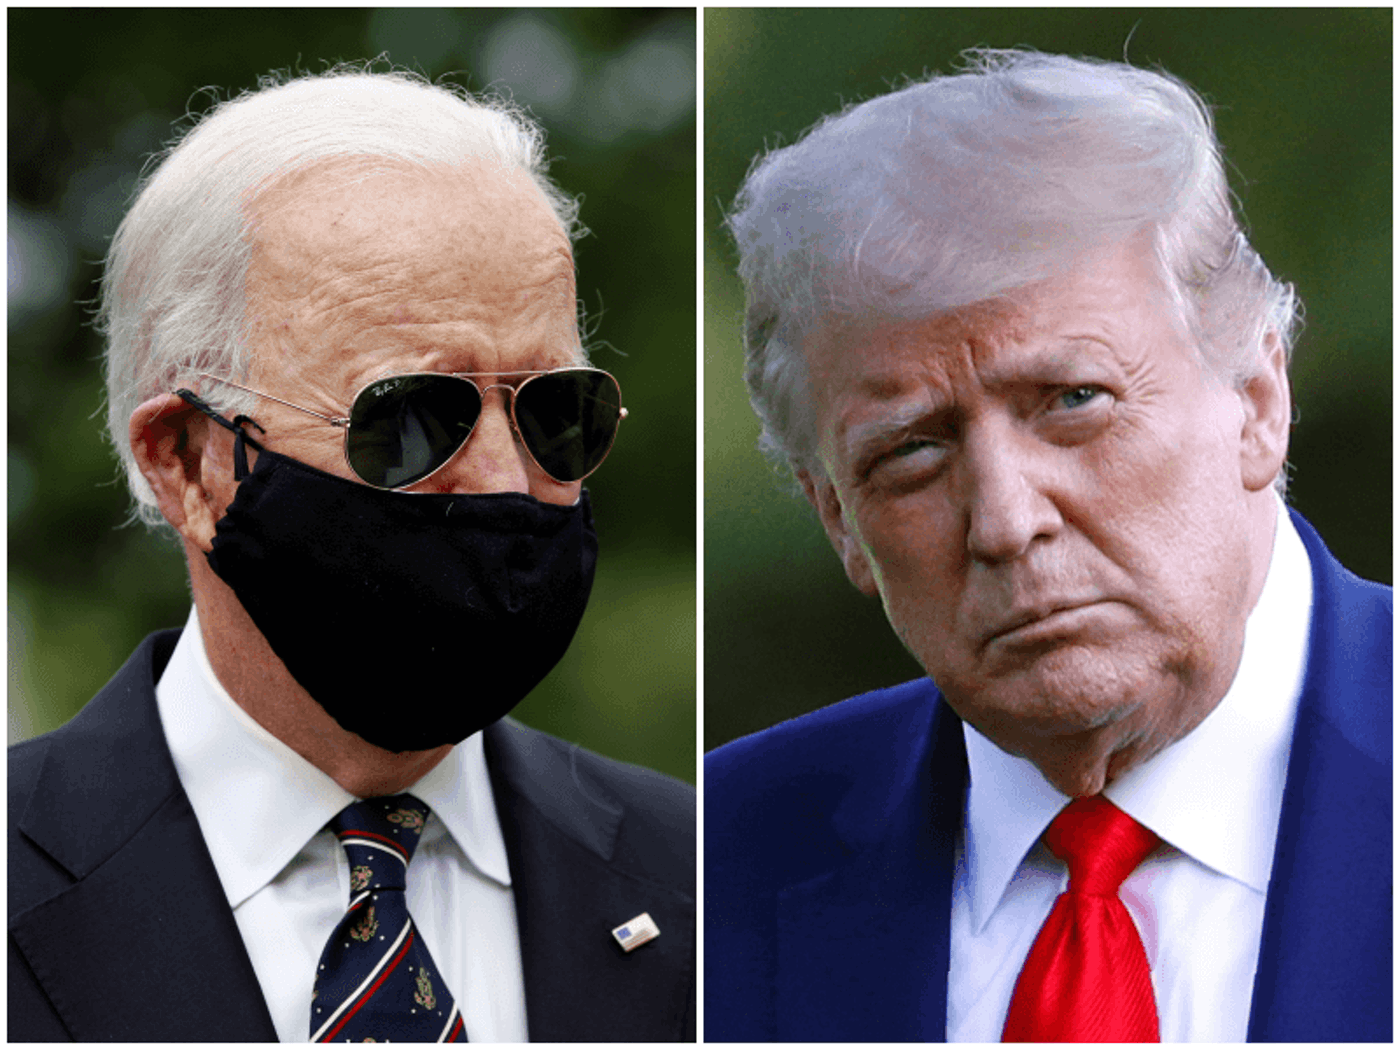 Biden has worn facial coverings during the coronavirus pandemic while Trump has resisted doing so. Photos courtesy the Associated Press.